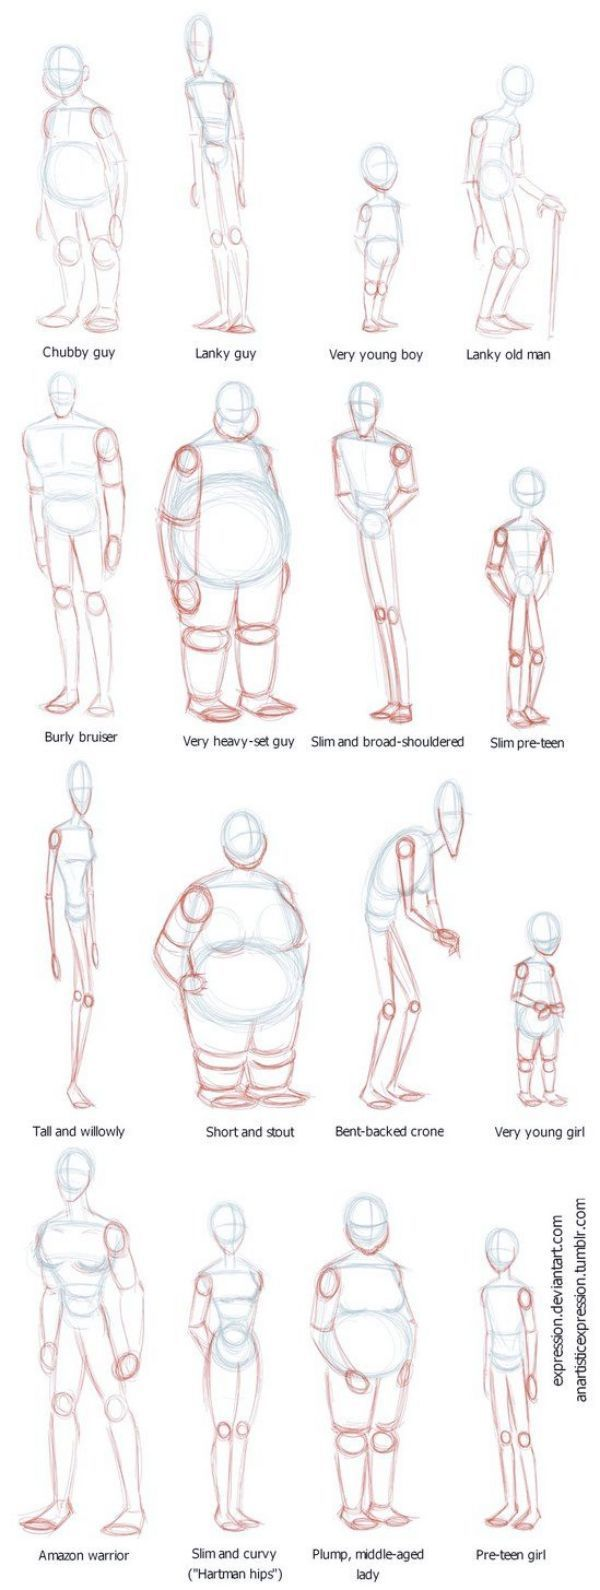 HOW TO DRAW BODY SHAPES: 30 Tutorials For Rookies